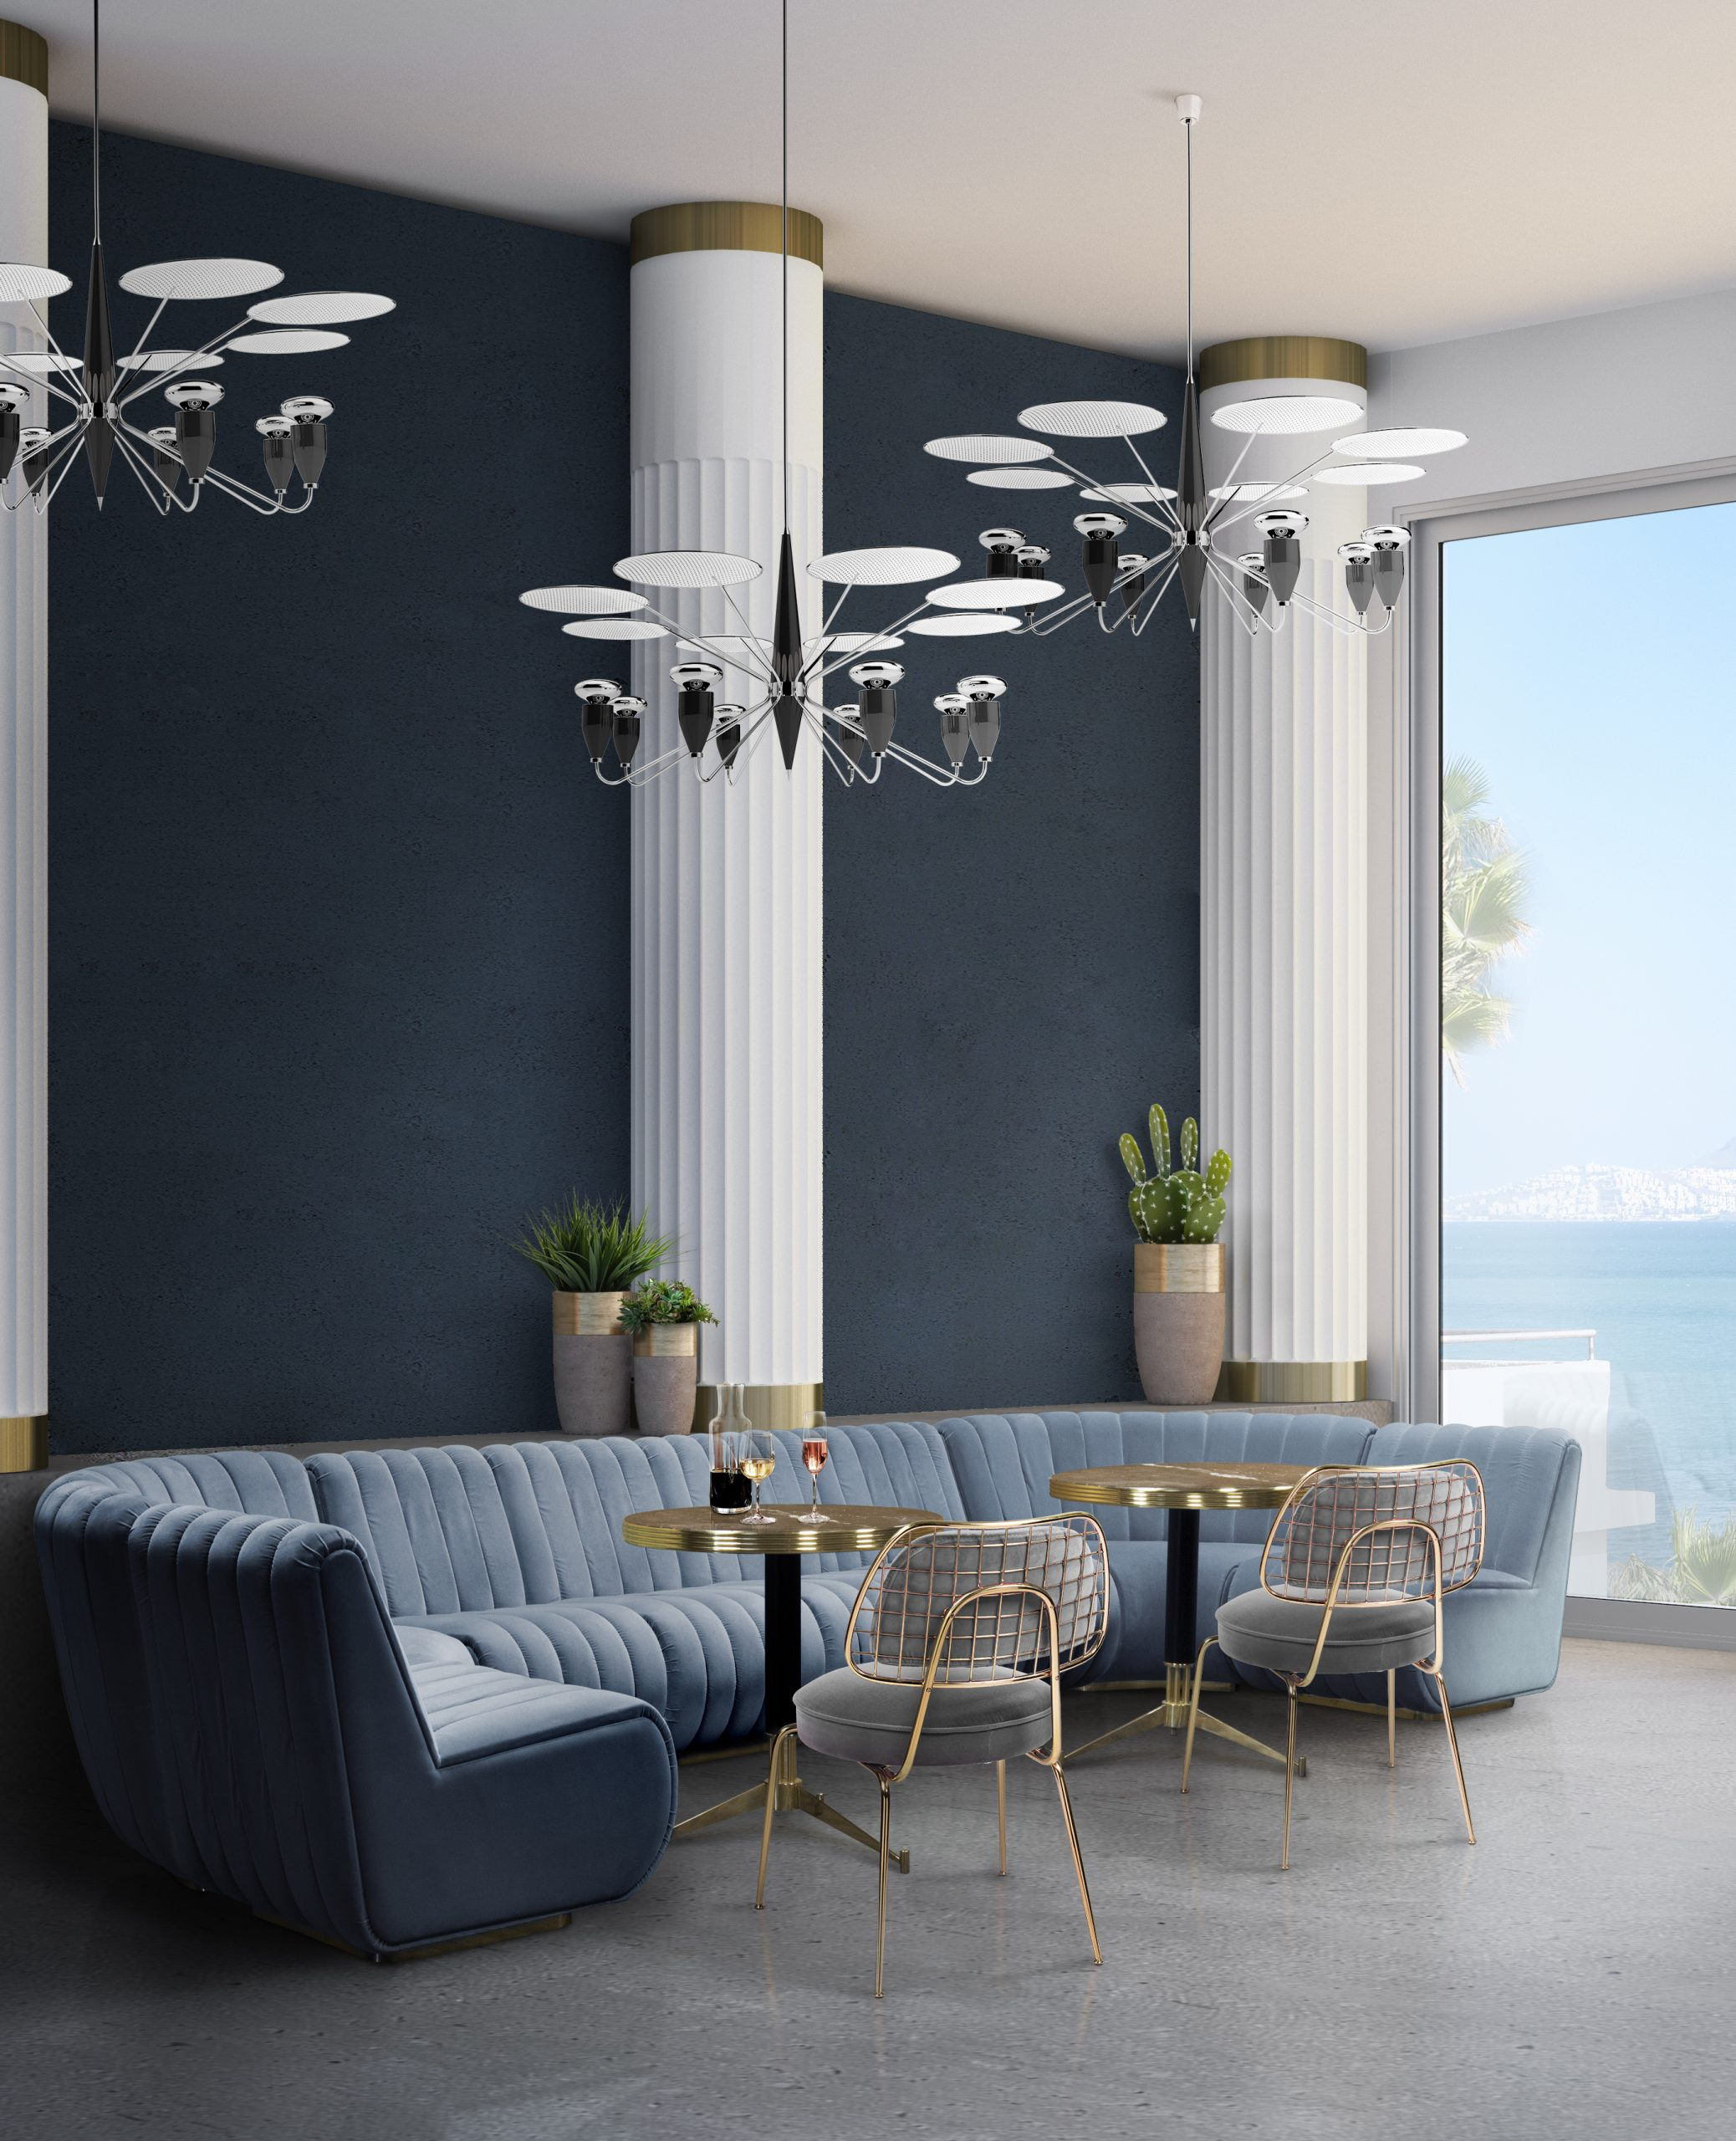 Best Deals: Discover The Top Lighting Products According to USA Trends For 2021! top lighting products Best Deals: Discover The Top Lighting Products According to USA Trends For 2021! 1